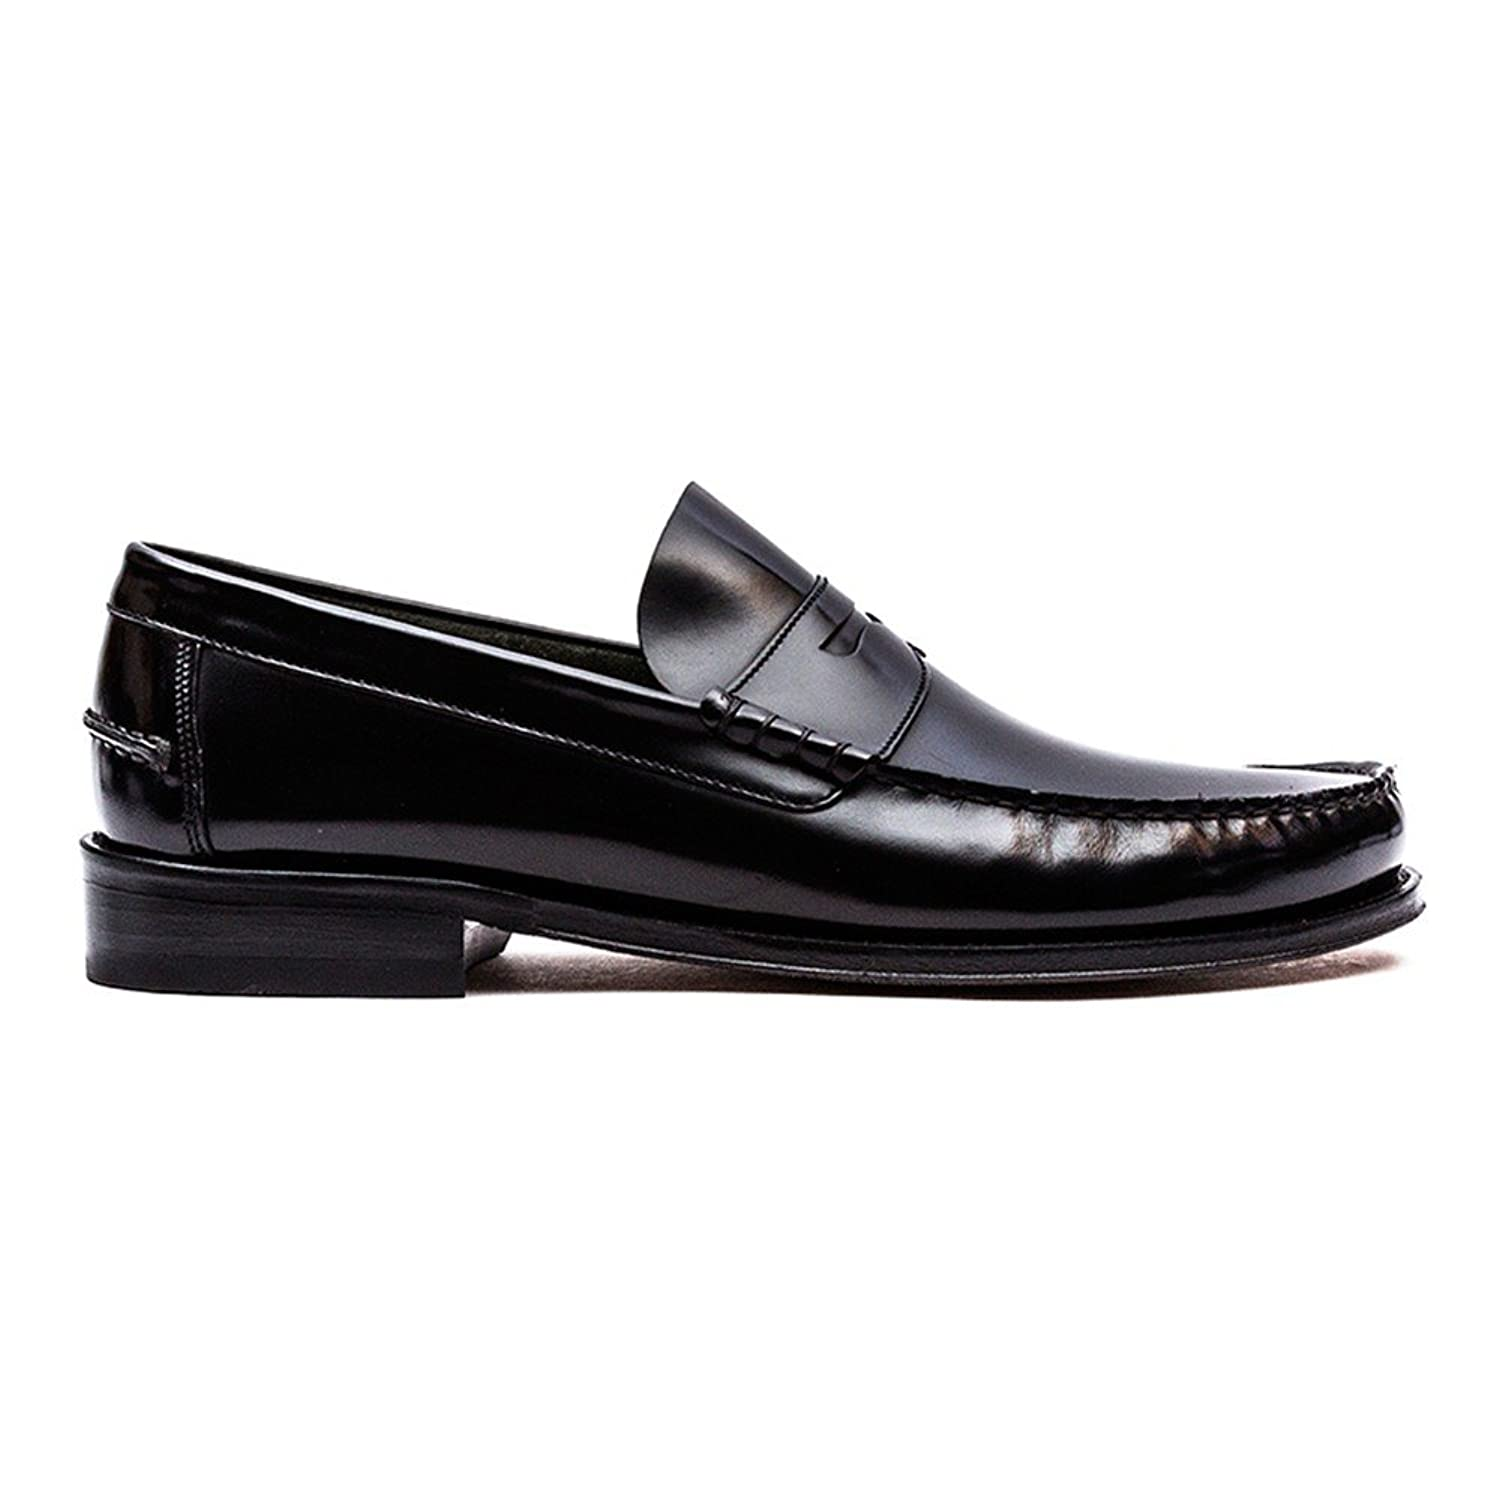 c1b02cbc471 Loake Men s Princeton Polished Leather Moccasin Shoes in Black and ...